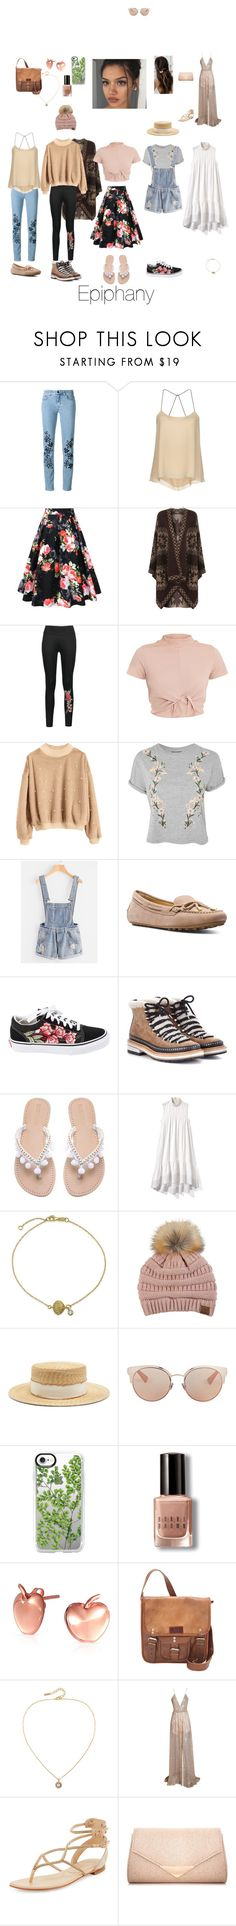 """""""Epiphany"""" by thegeekiestholly ❤ liked on Polyvore featuring Victoria, Victoria Beckham, Goldie, WearAll, Topshop, MICHAEL Michael Kors, Vans, rag & bone, Concord, 3.1 Phillip Lim and Bling Jewelry"""